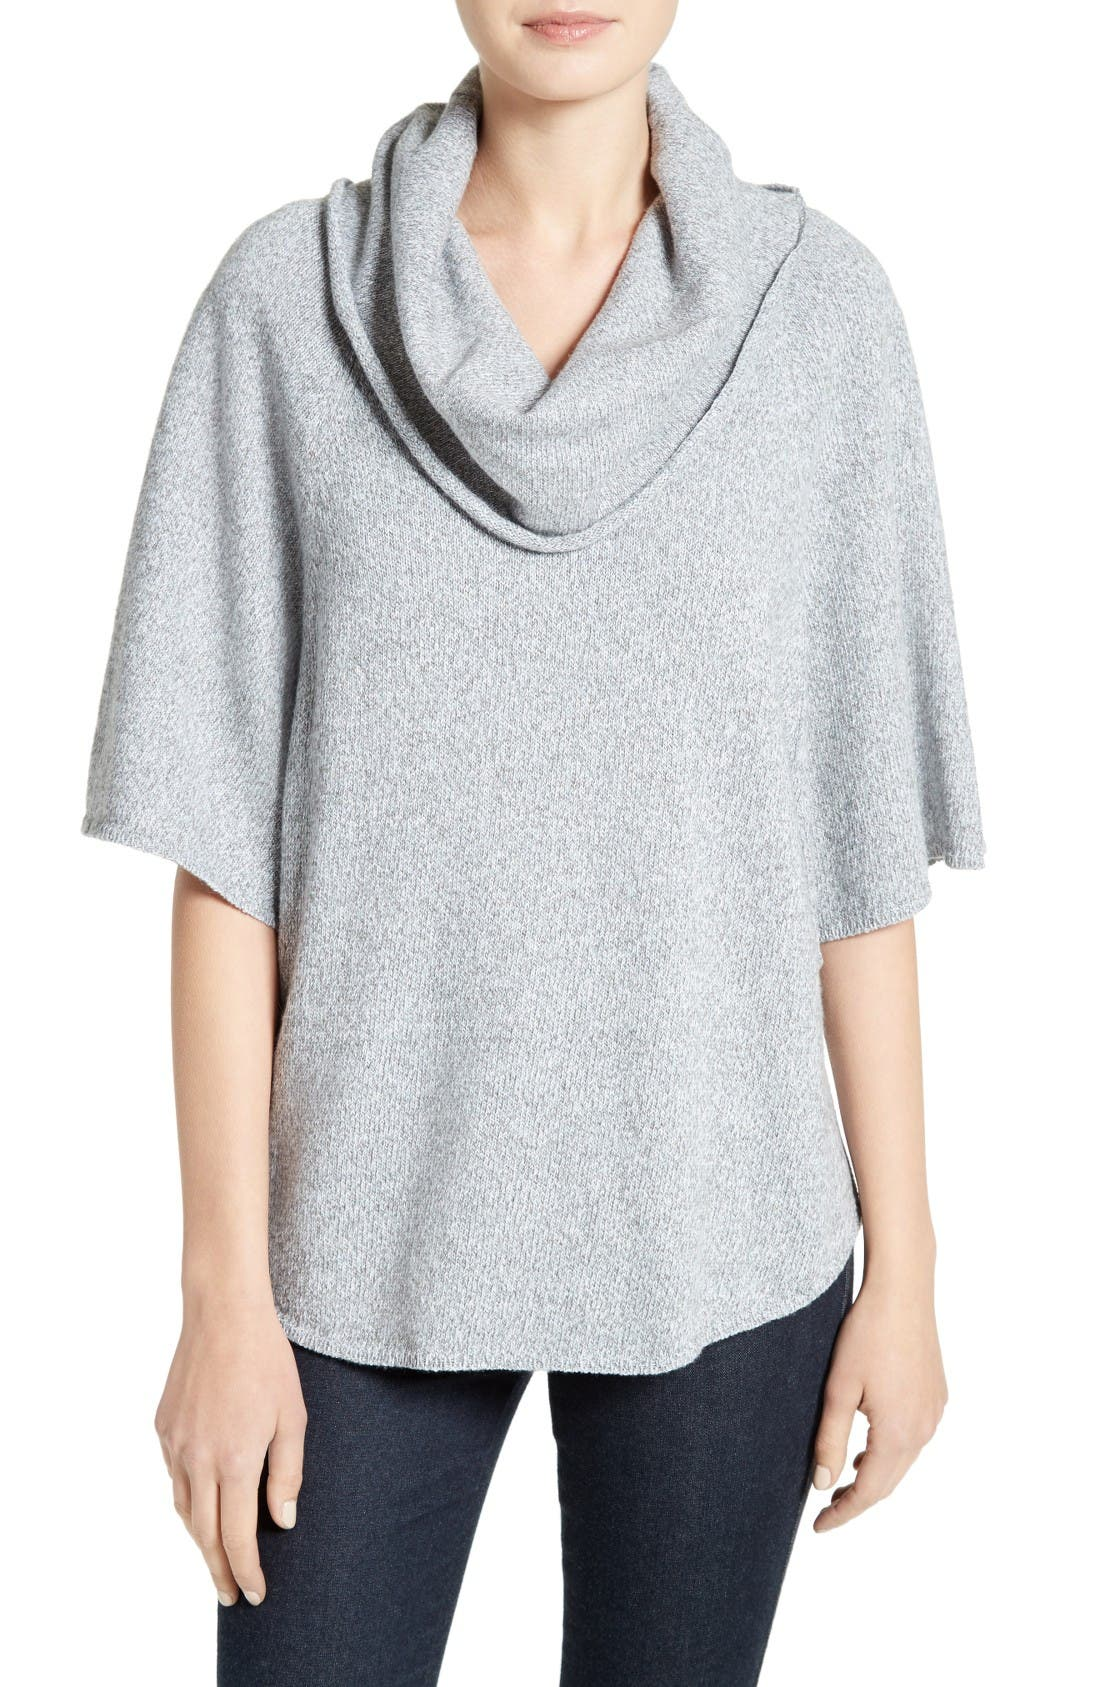 Joie Celia Cowl Neck Sweater